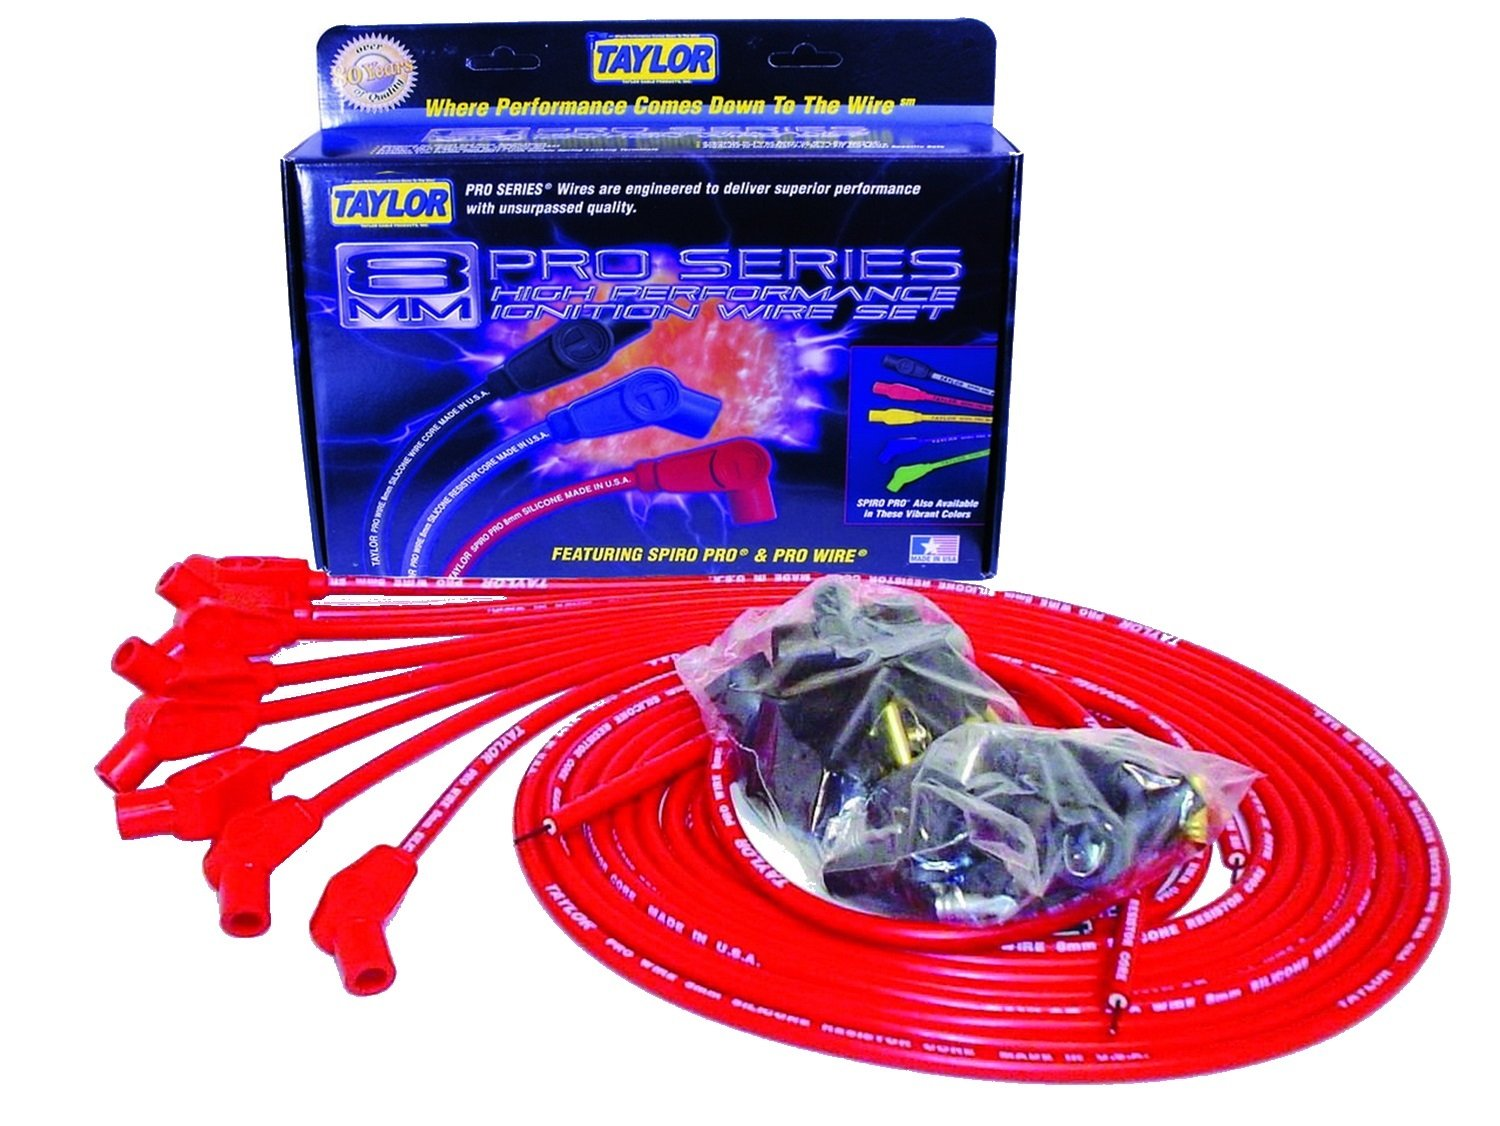 Taylor Cable 70253 8mm Pro Wire Red Spark Plug Wire Set by Taylor Cable